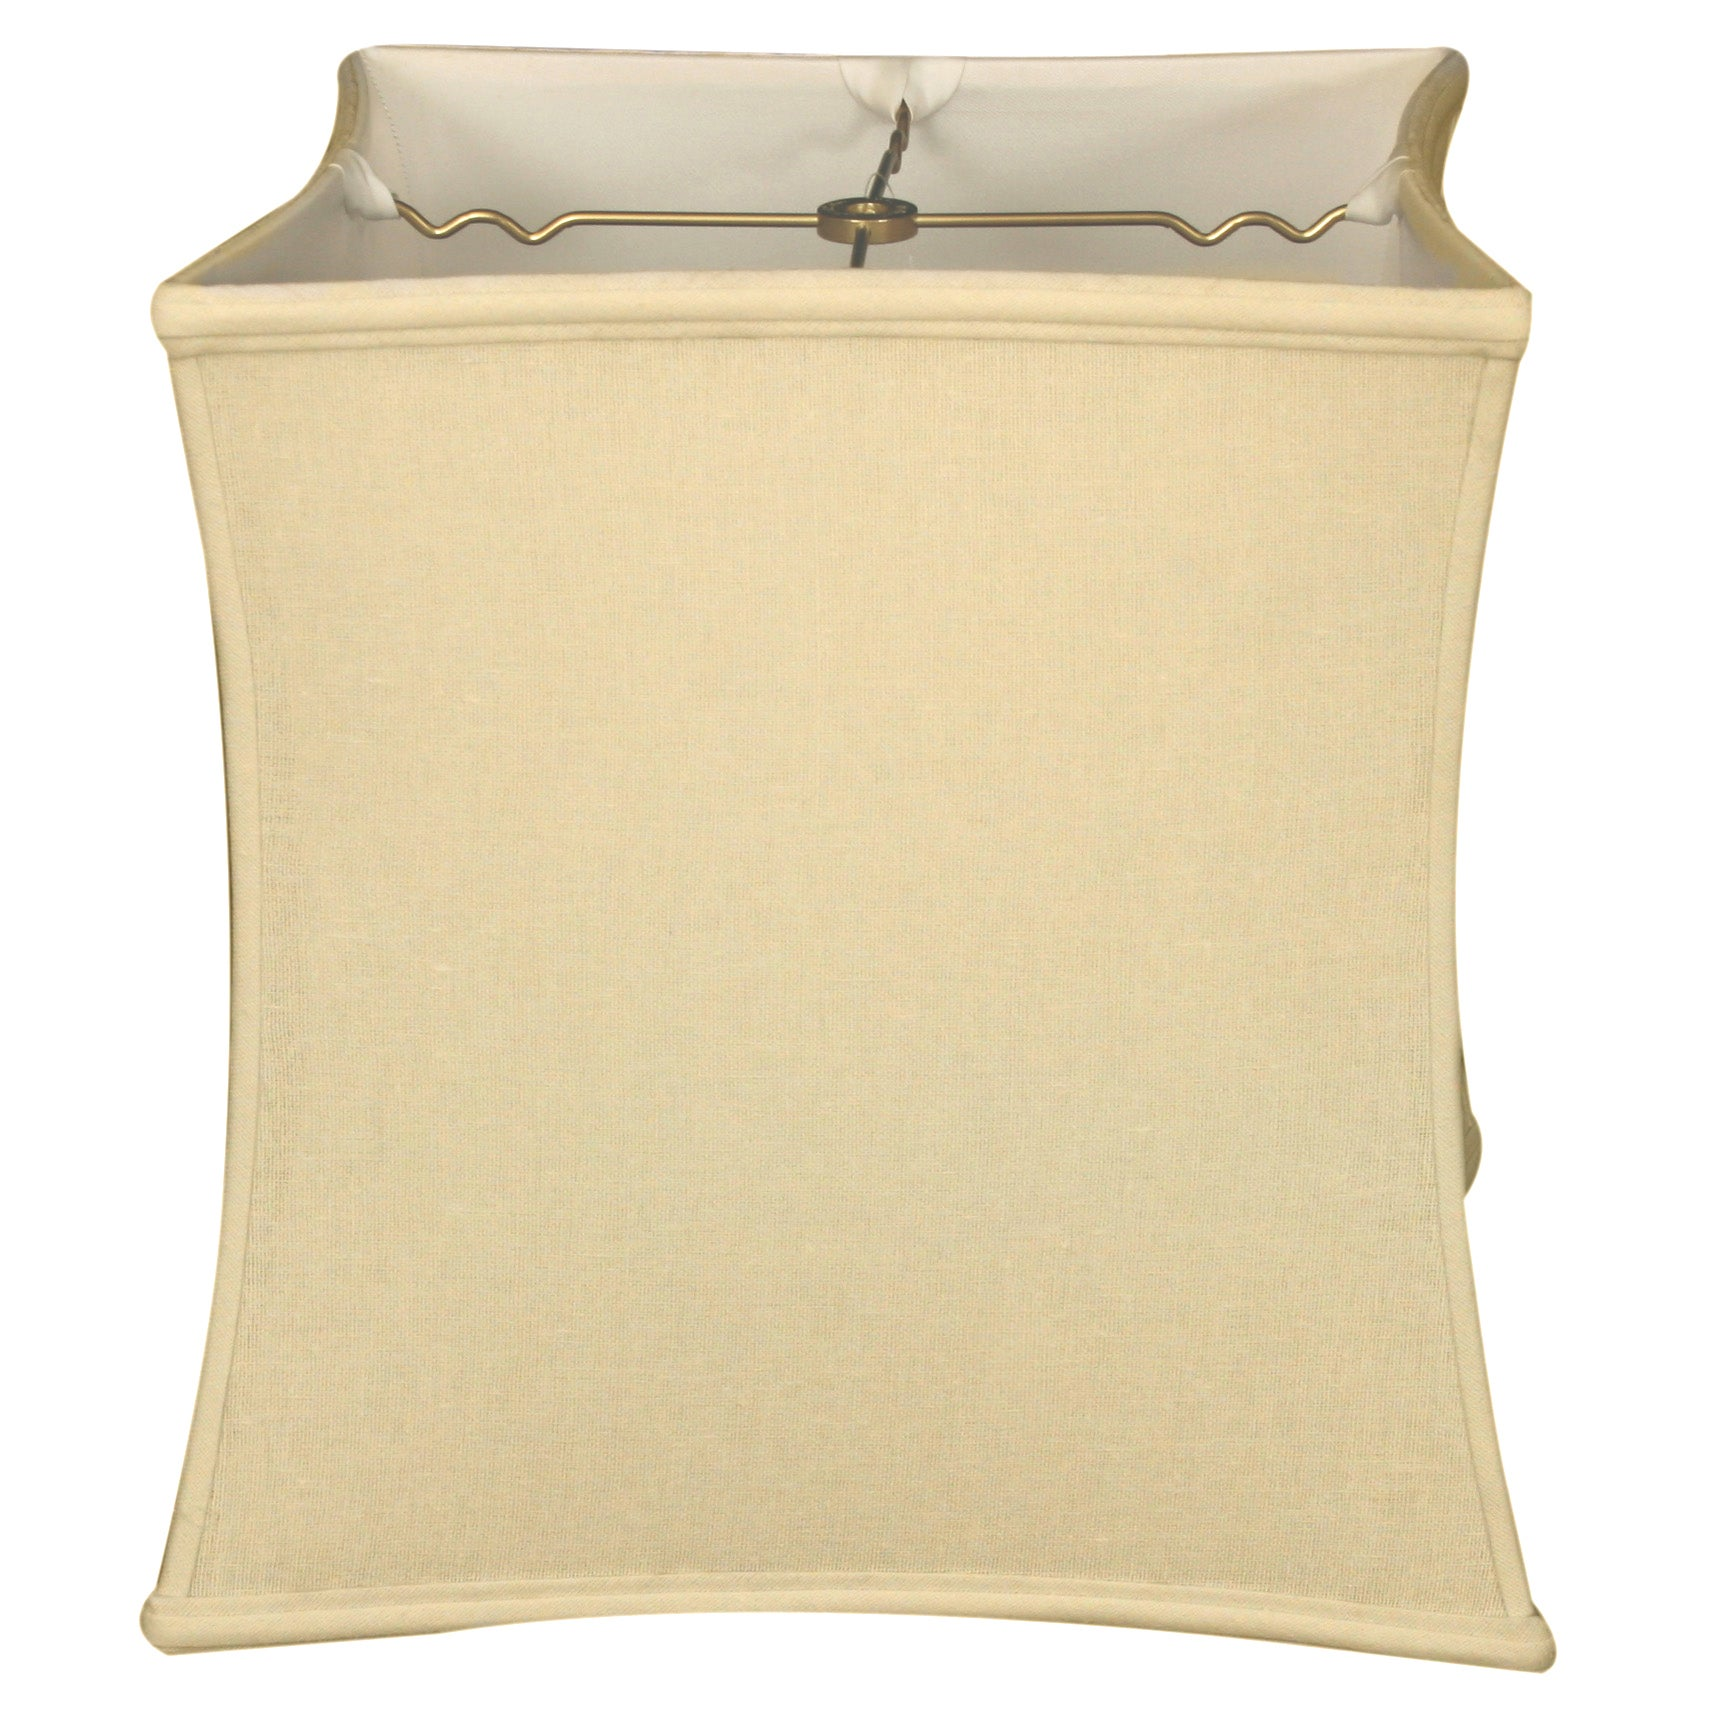 Shop Royal Designs Square Cube Bell Basic Lamp Shade Linen Cream 12 X 13 X 13 Overstock 14800853